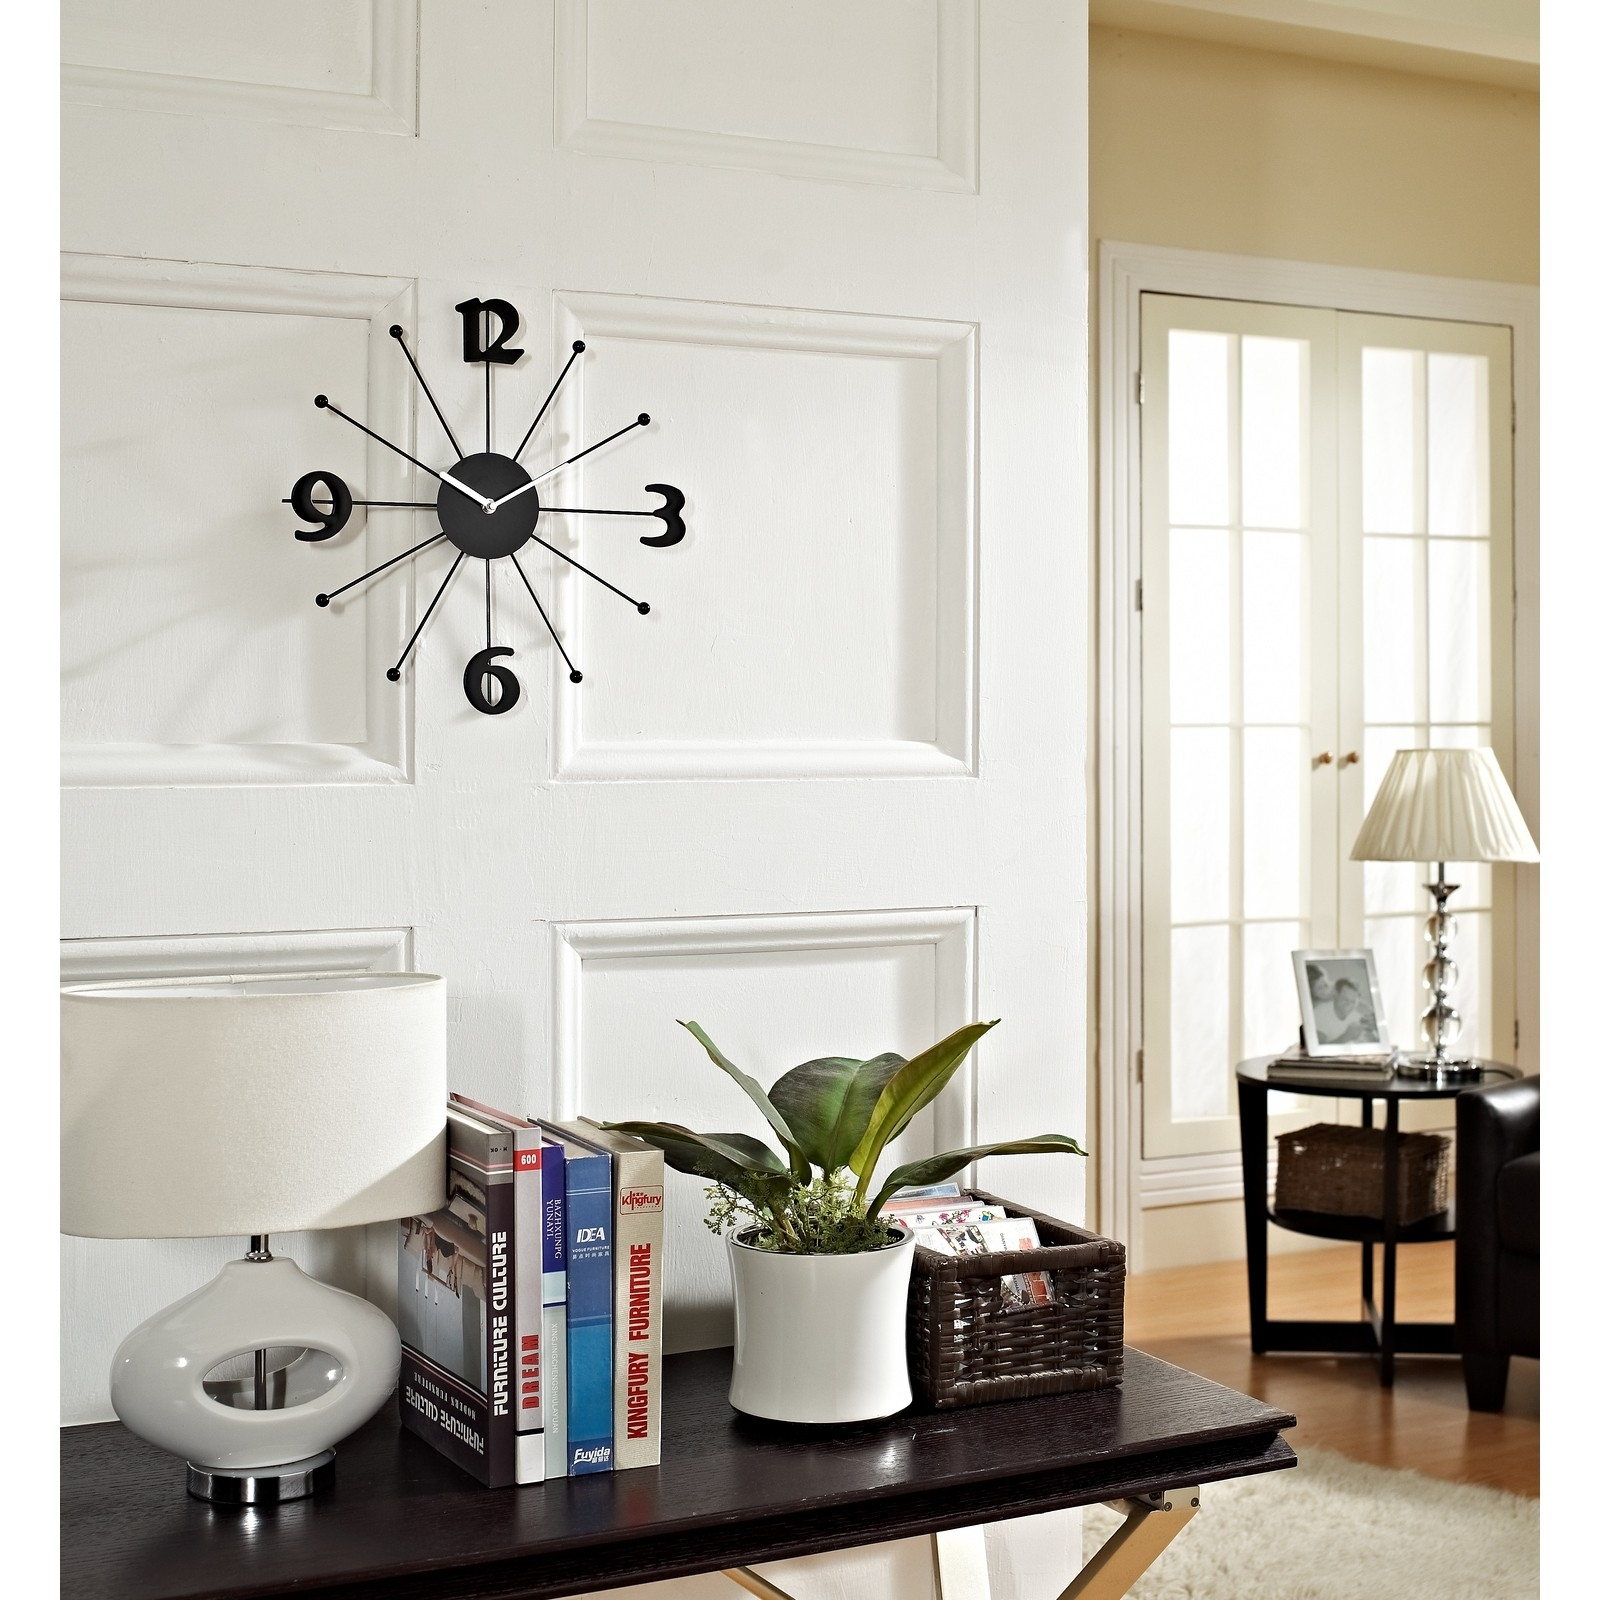 Decorative Fancy Wall Clocks | Homesfeed pertaining to Most Current Clock Wall Accents